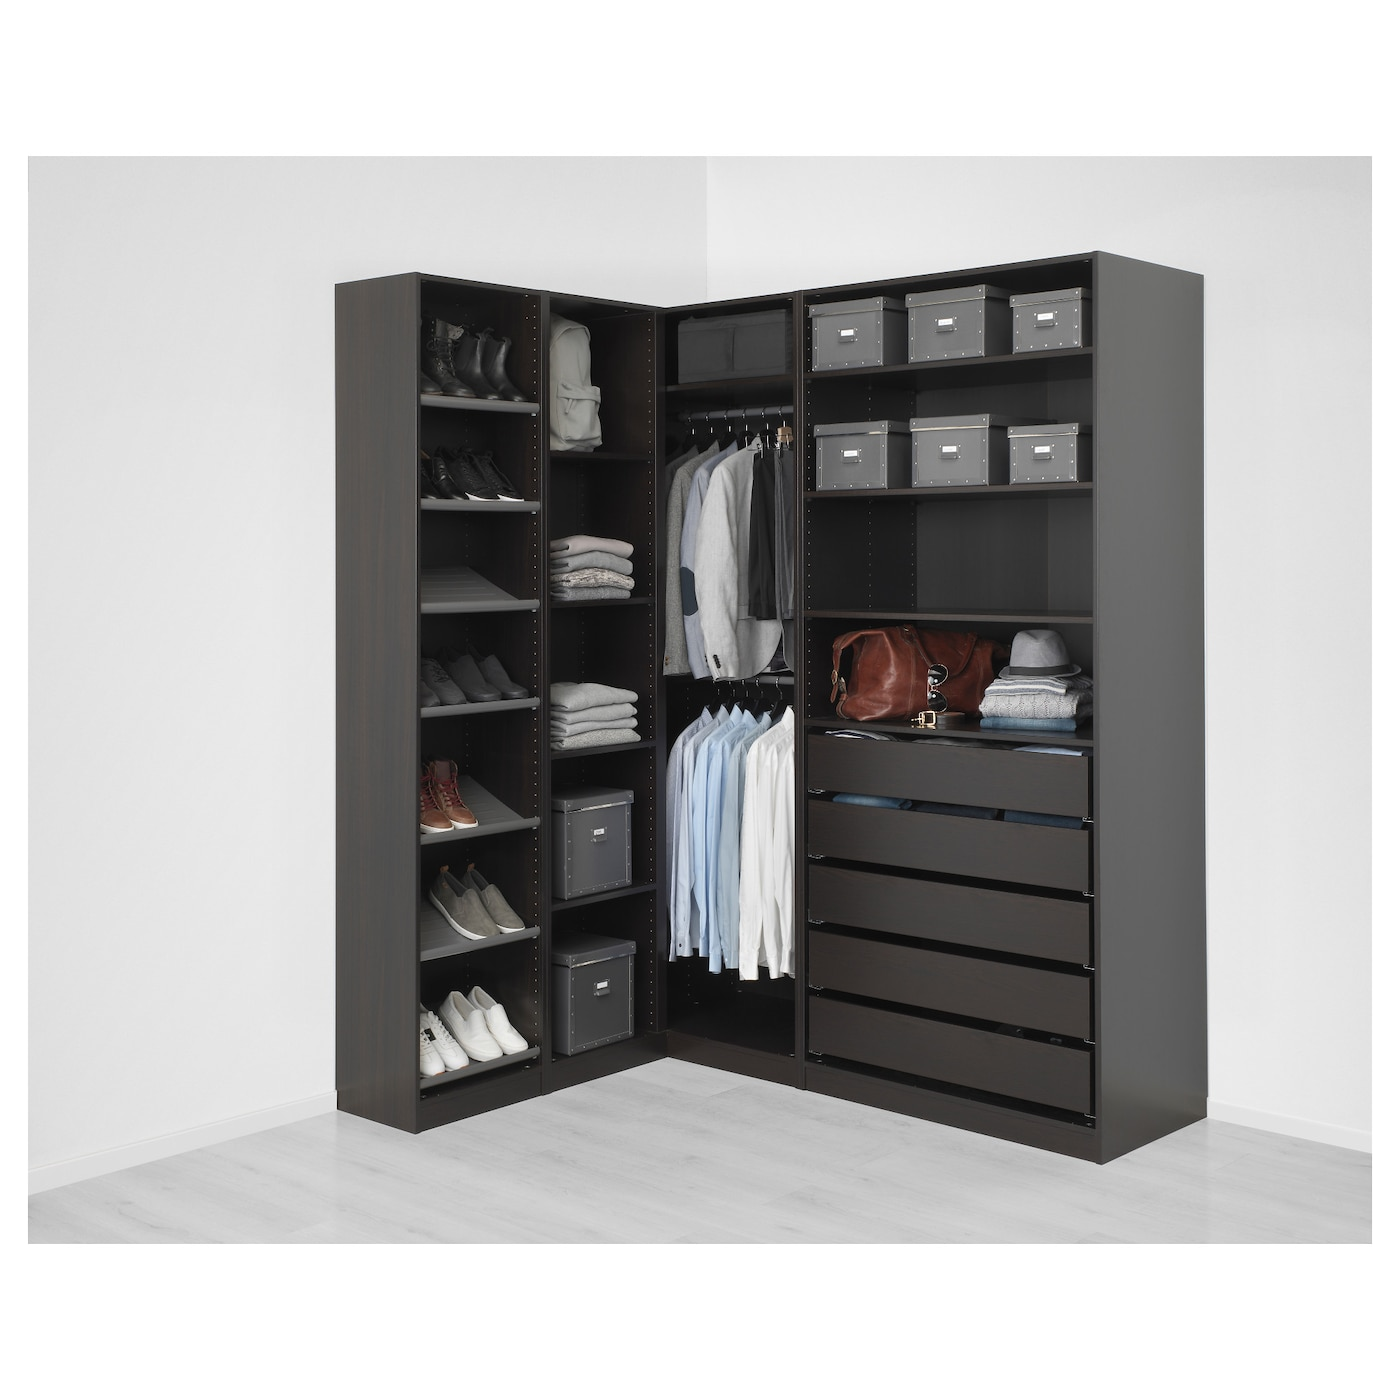 pax corner wardrobe black brown 160 188 x 236 cm ikea. Black Bedroom Furniture Sets. Home Design Ideas